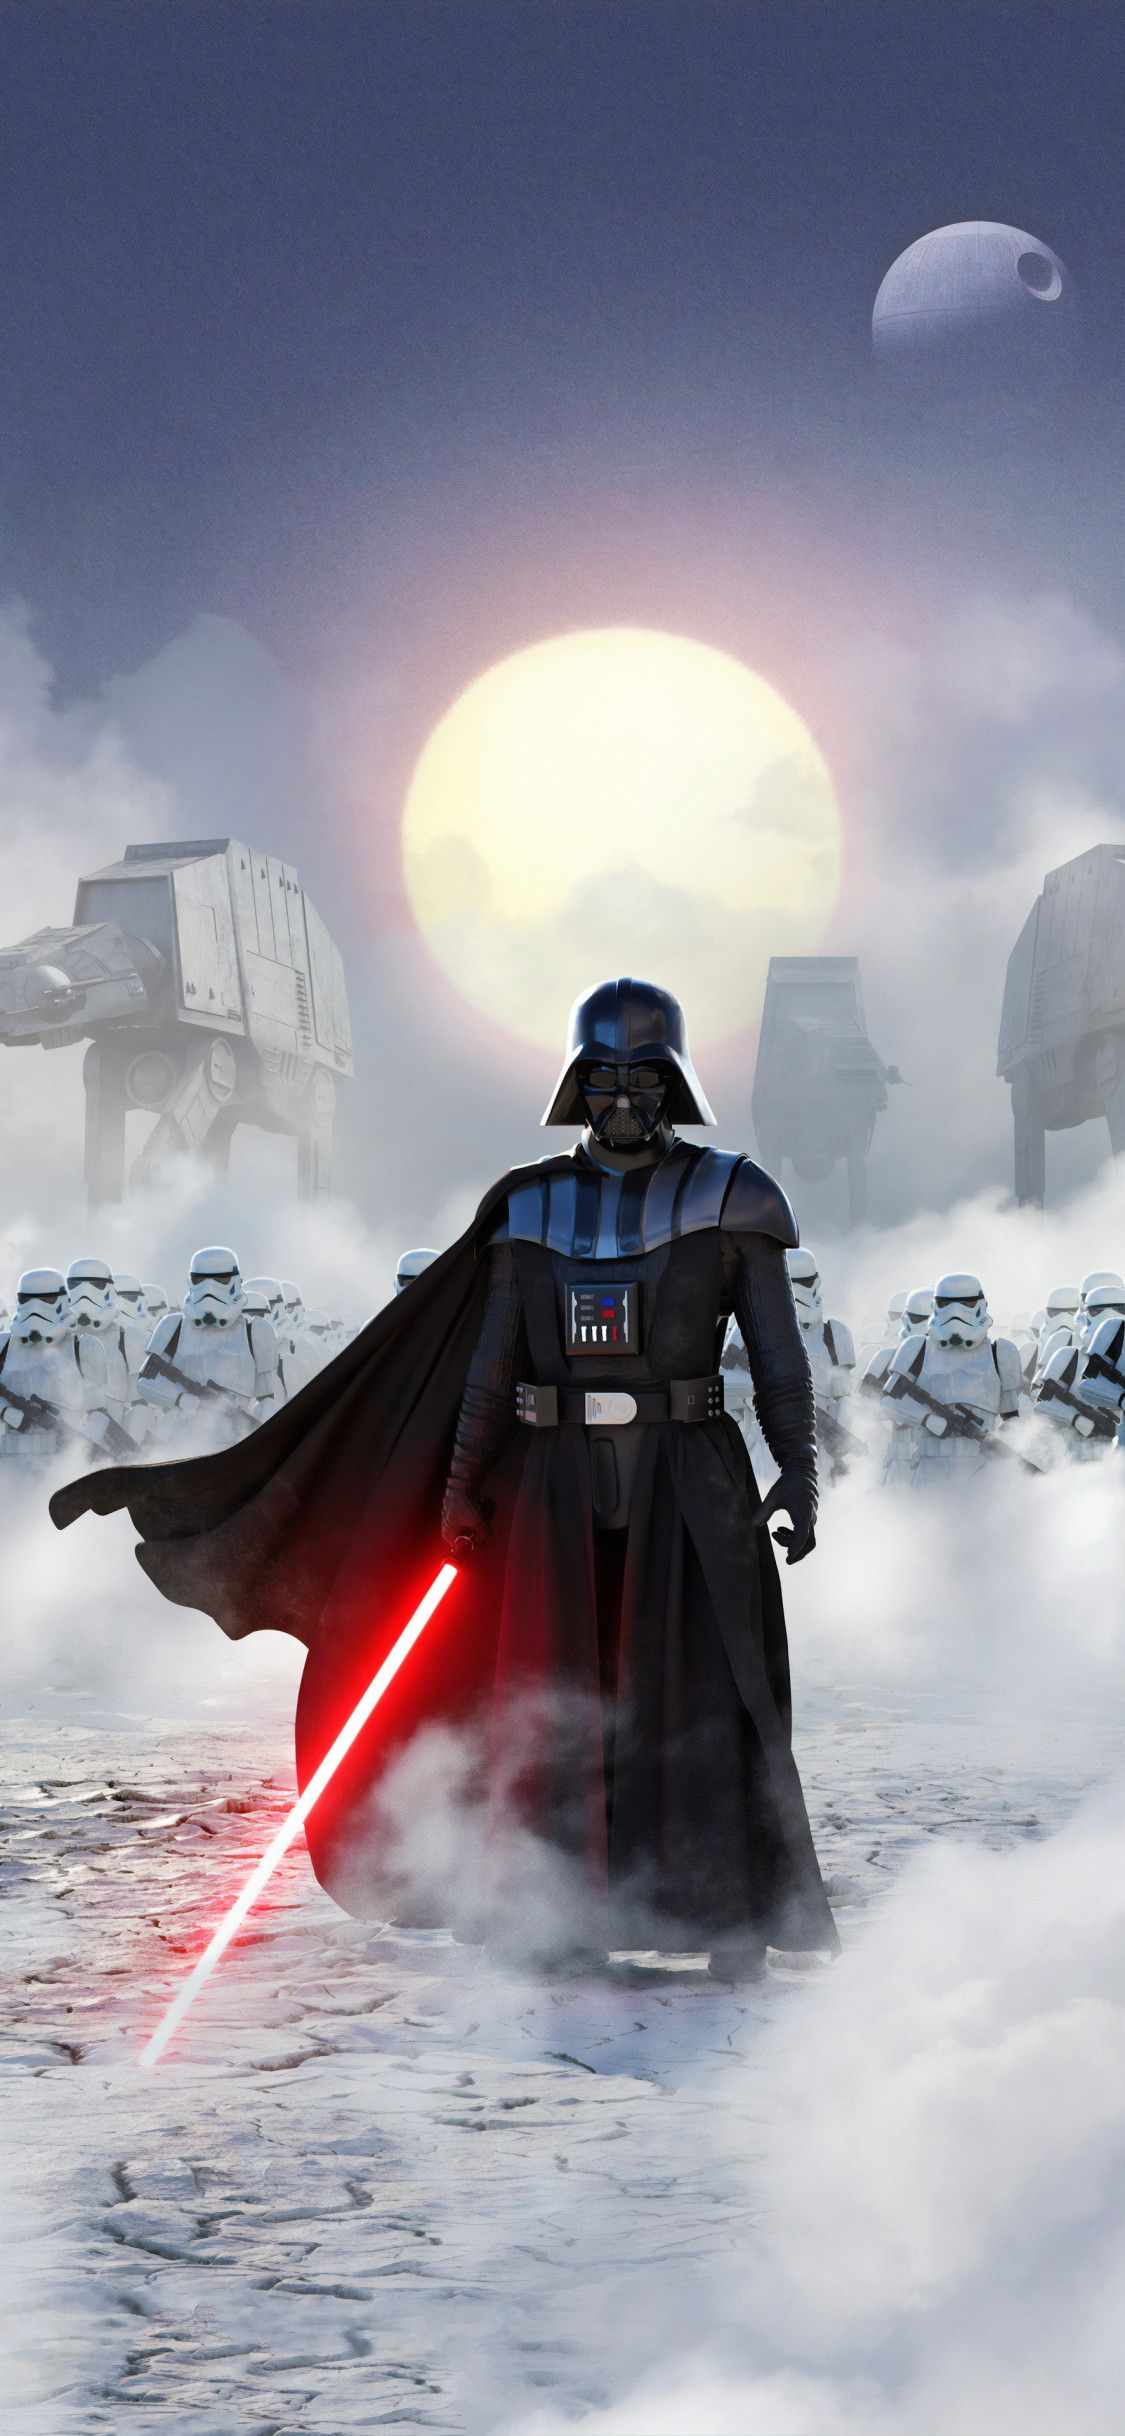 Ideas For Home Screen Darth Vader Wallpaper 4k Iphone